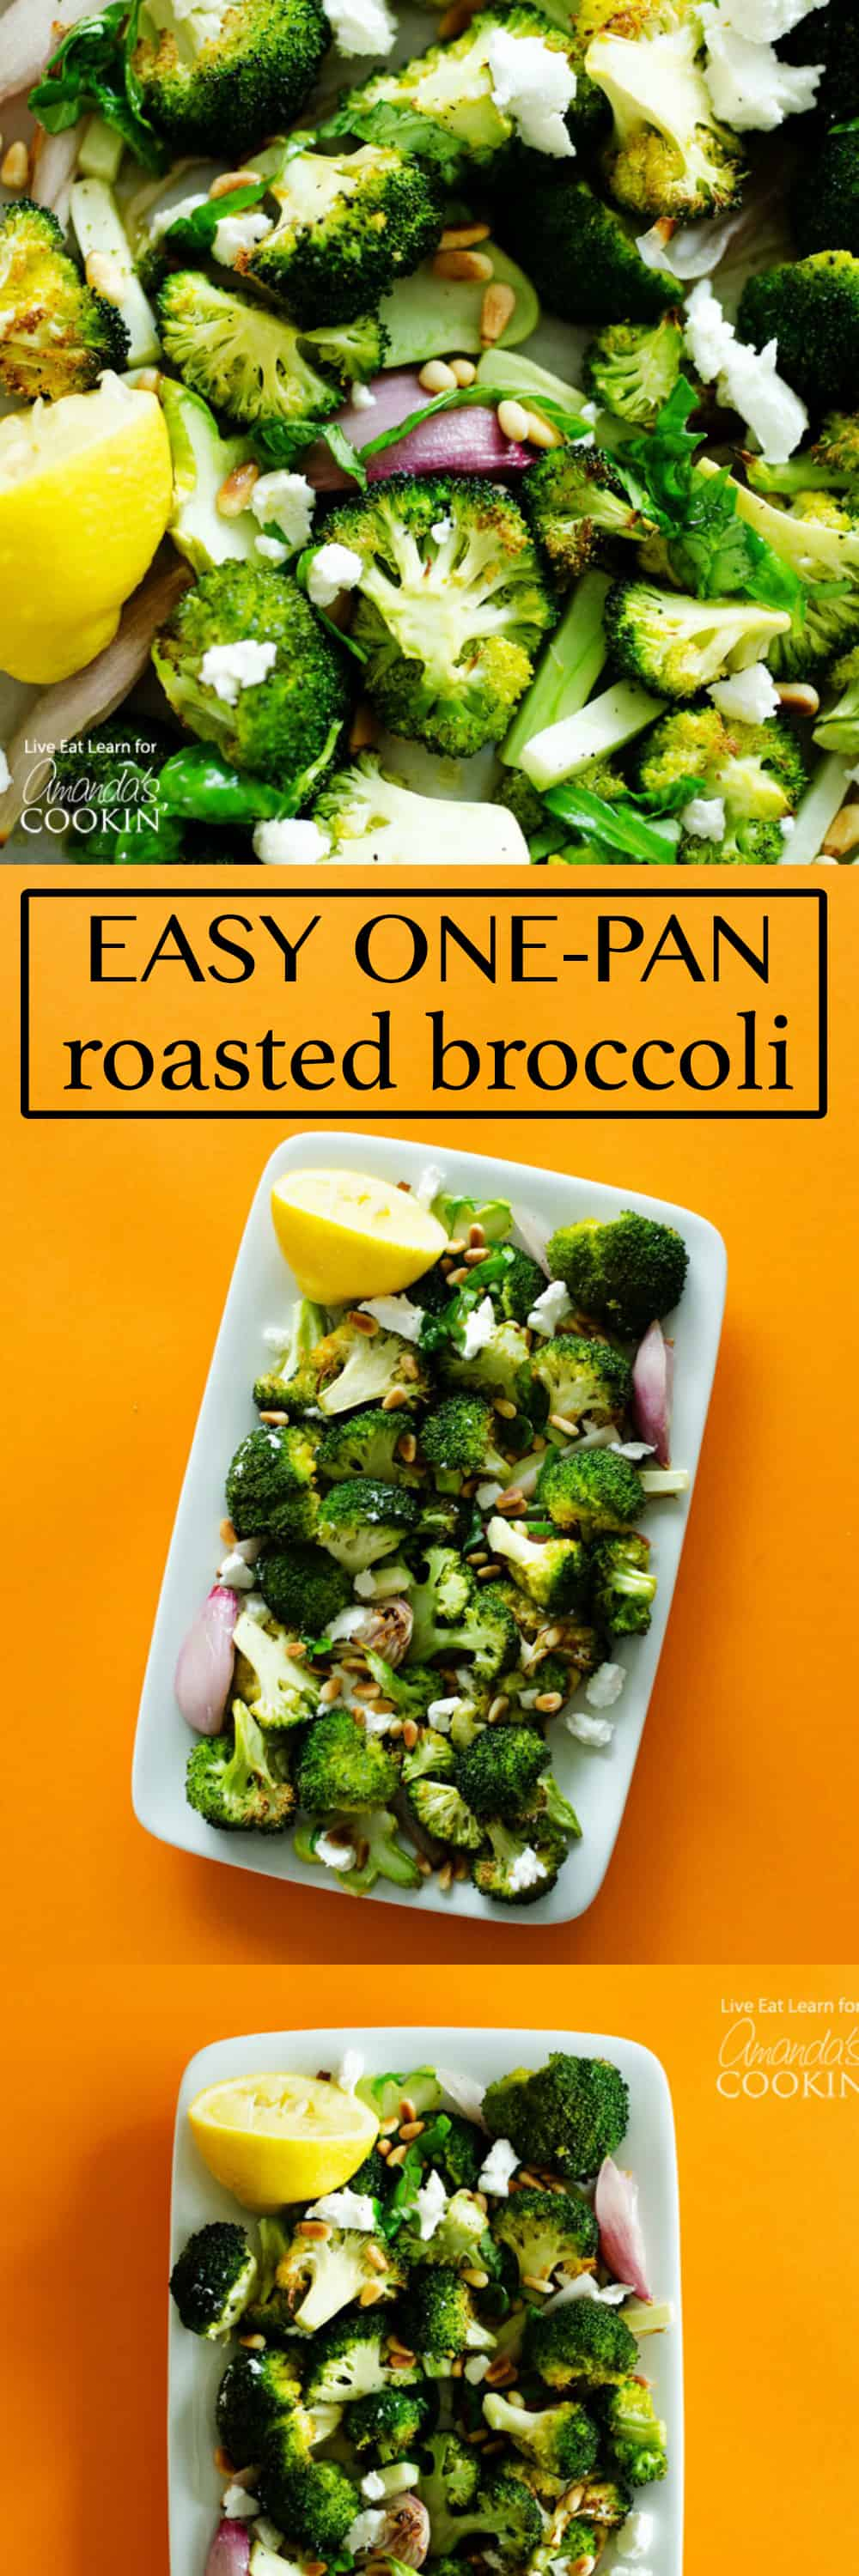 This one-pan Roasted Broccoli dish is complimented with lemon basil dressing, crumbled goat cheese, and toasted pine nuts!